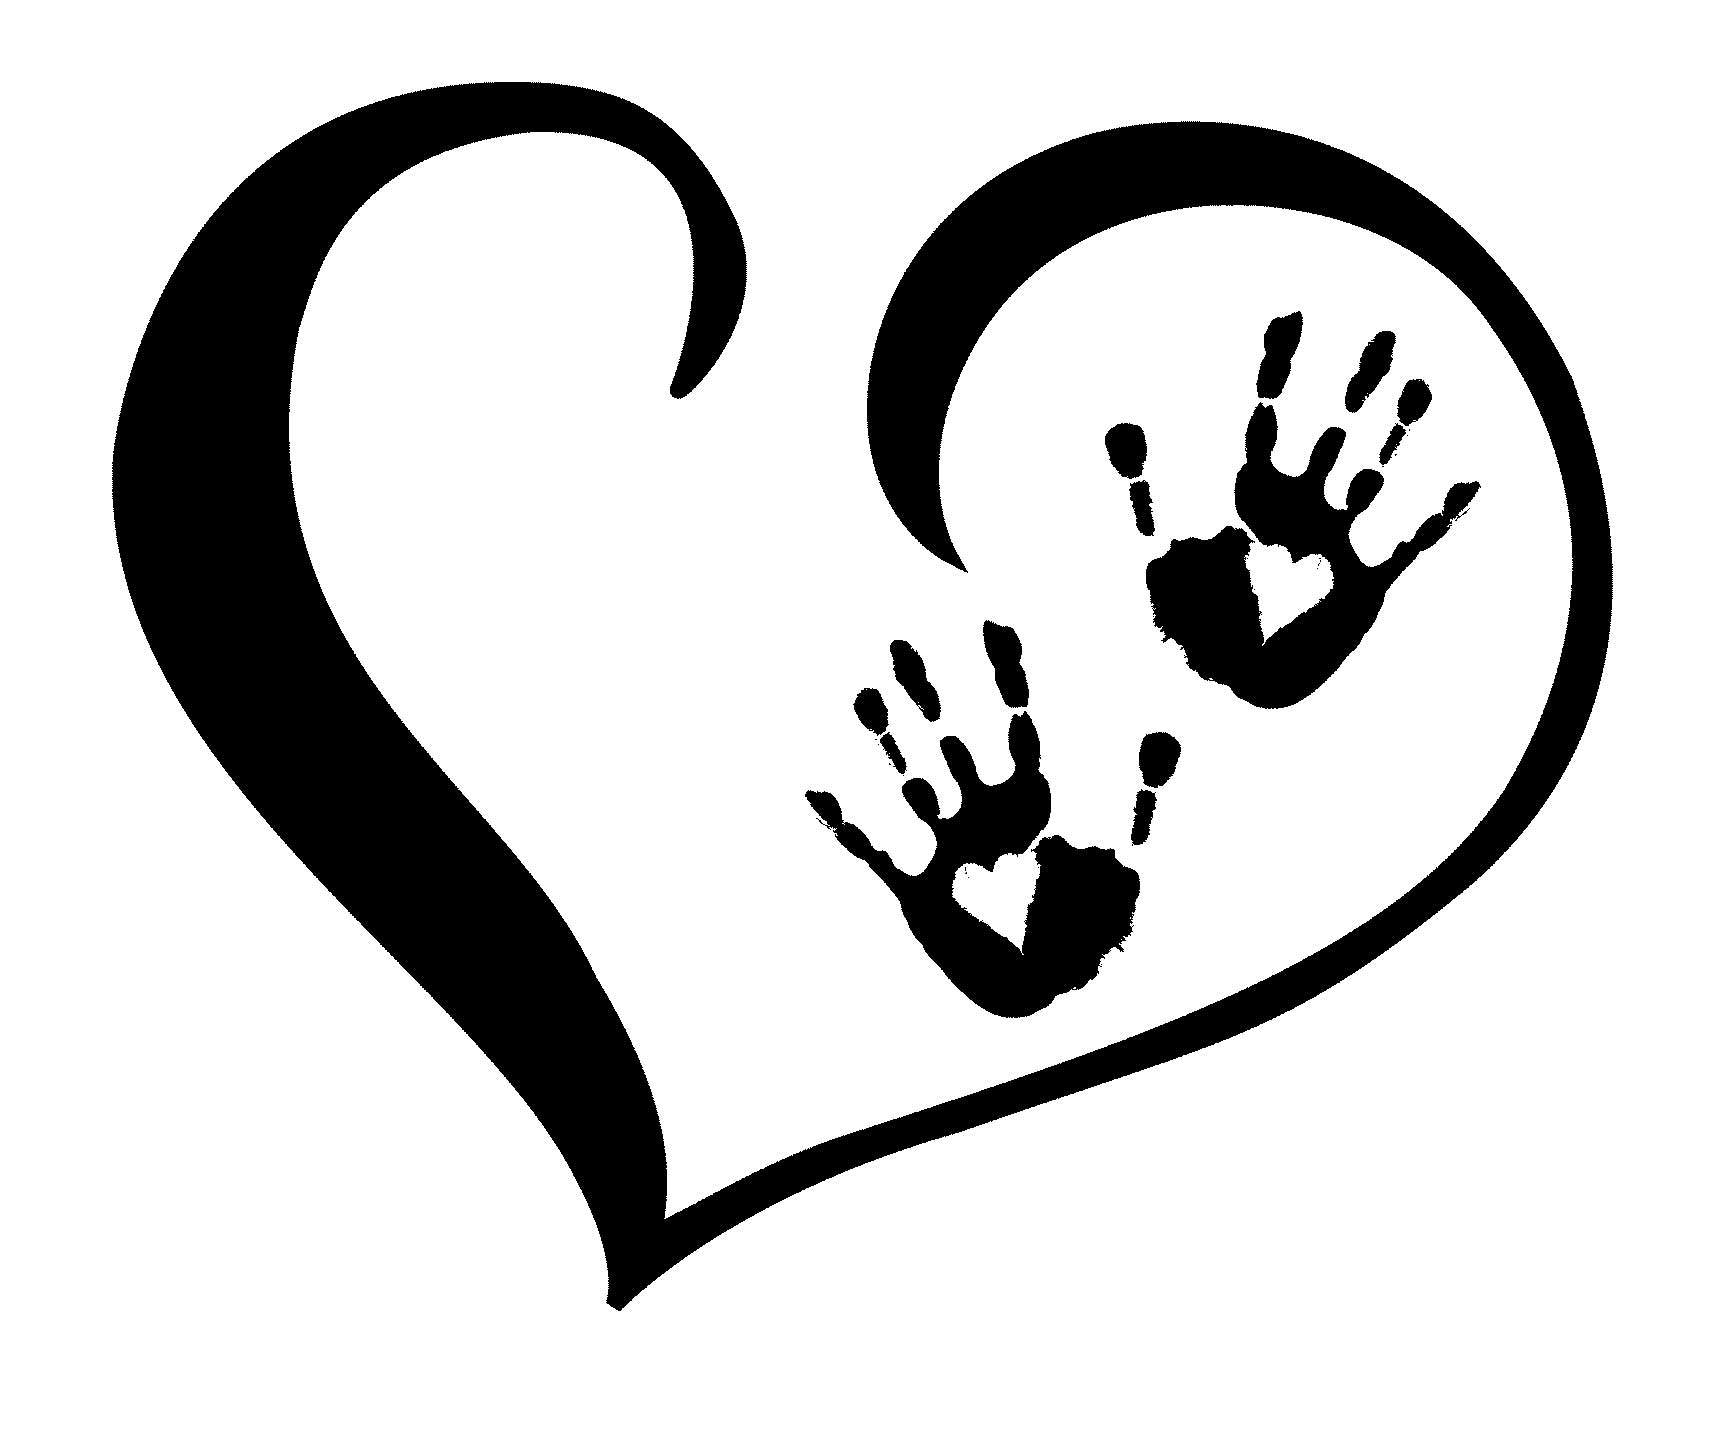 Free Healing Heart Cliparts, Download Free Clip Art, Free.